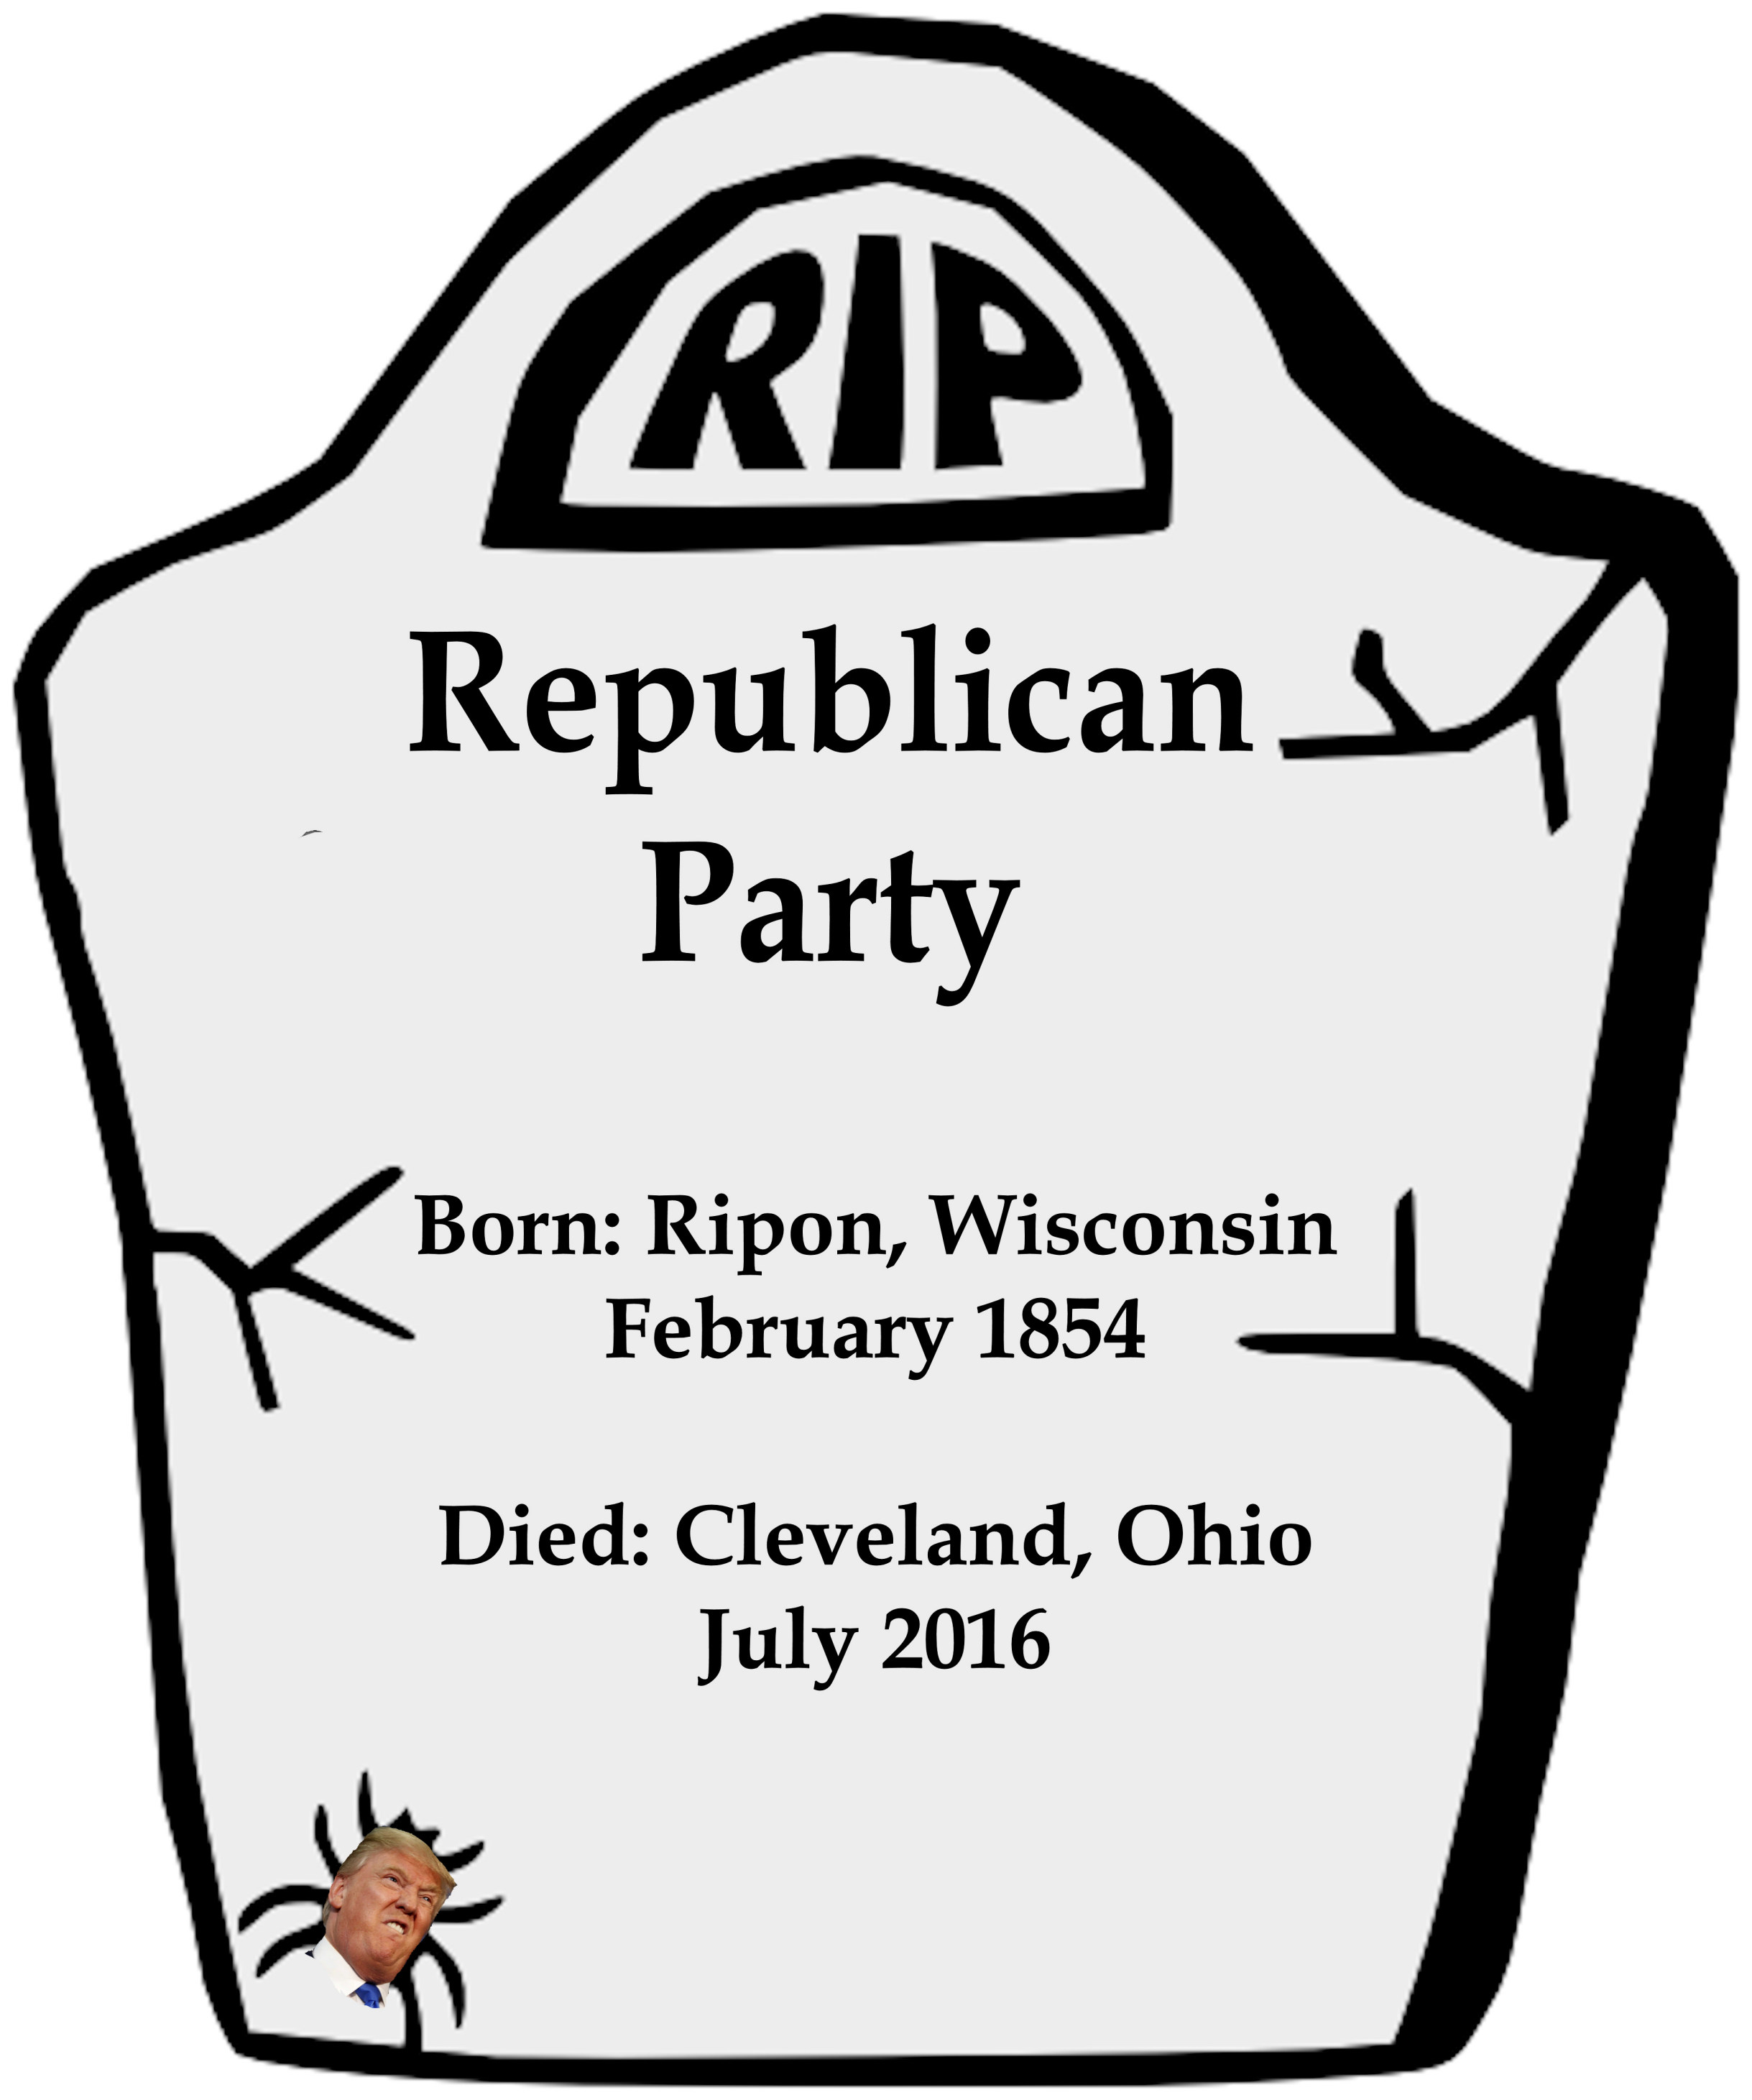 an obituary for the republican party huffpost